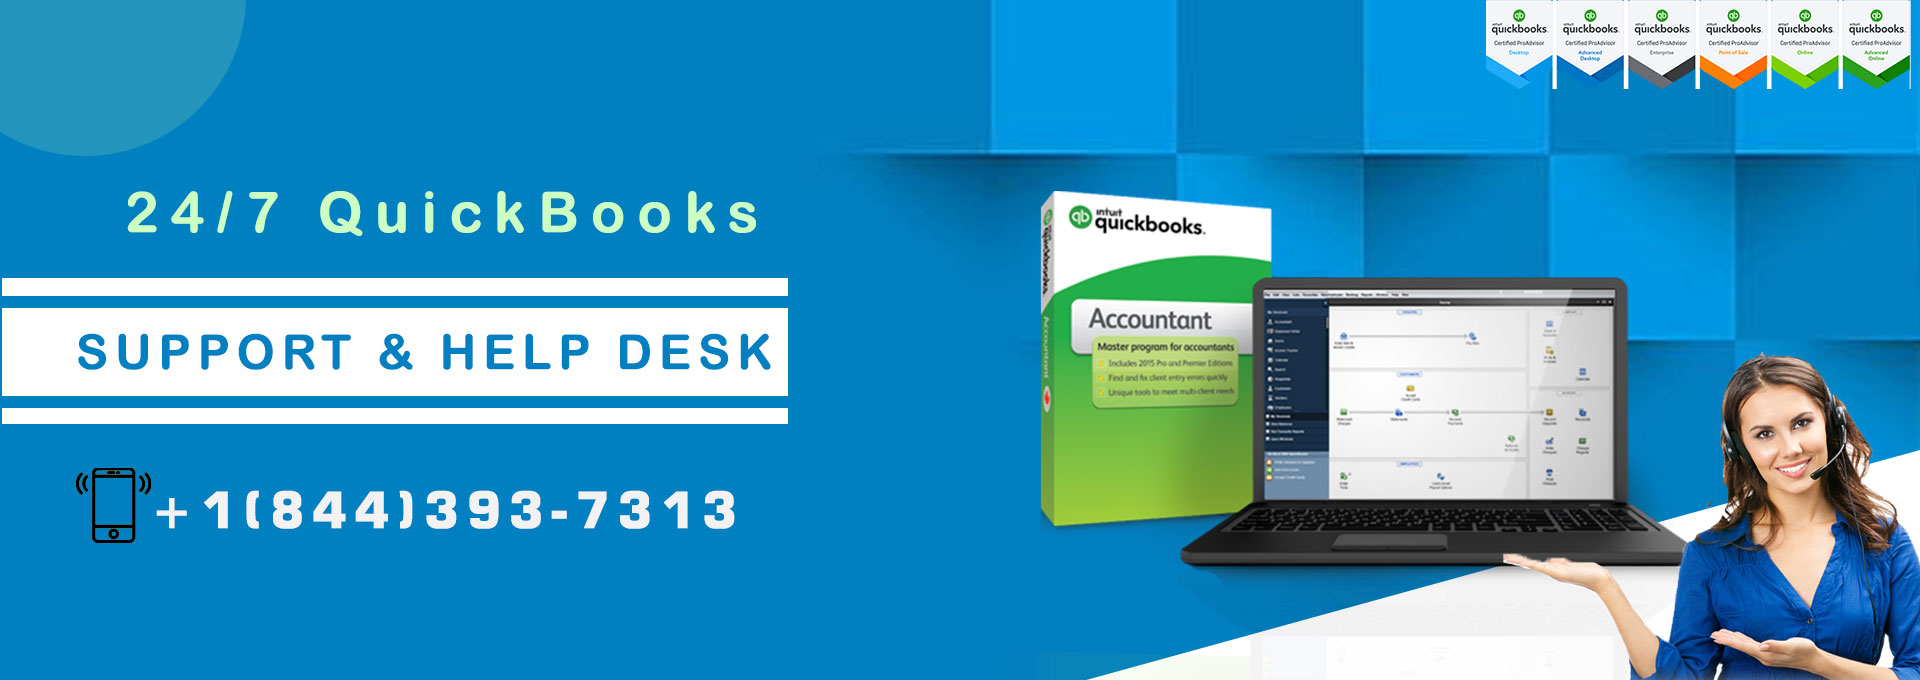 QuickBooks customer support- Active 24/7 to help you use QB with perfection